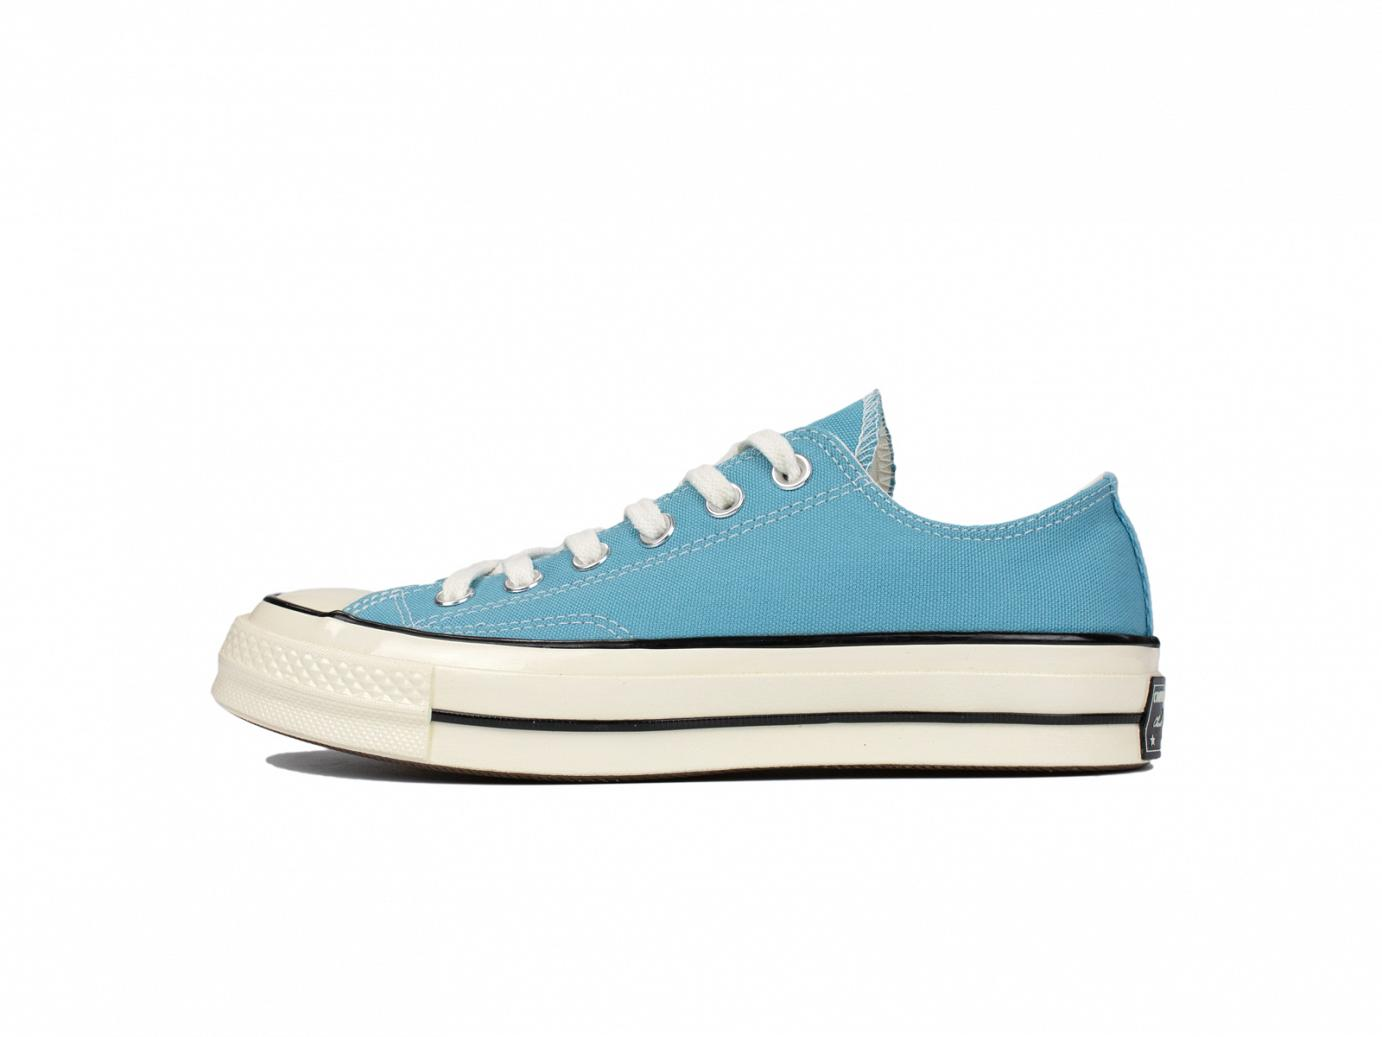 Chuck Taylor All Star 70 ox shoreline blue